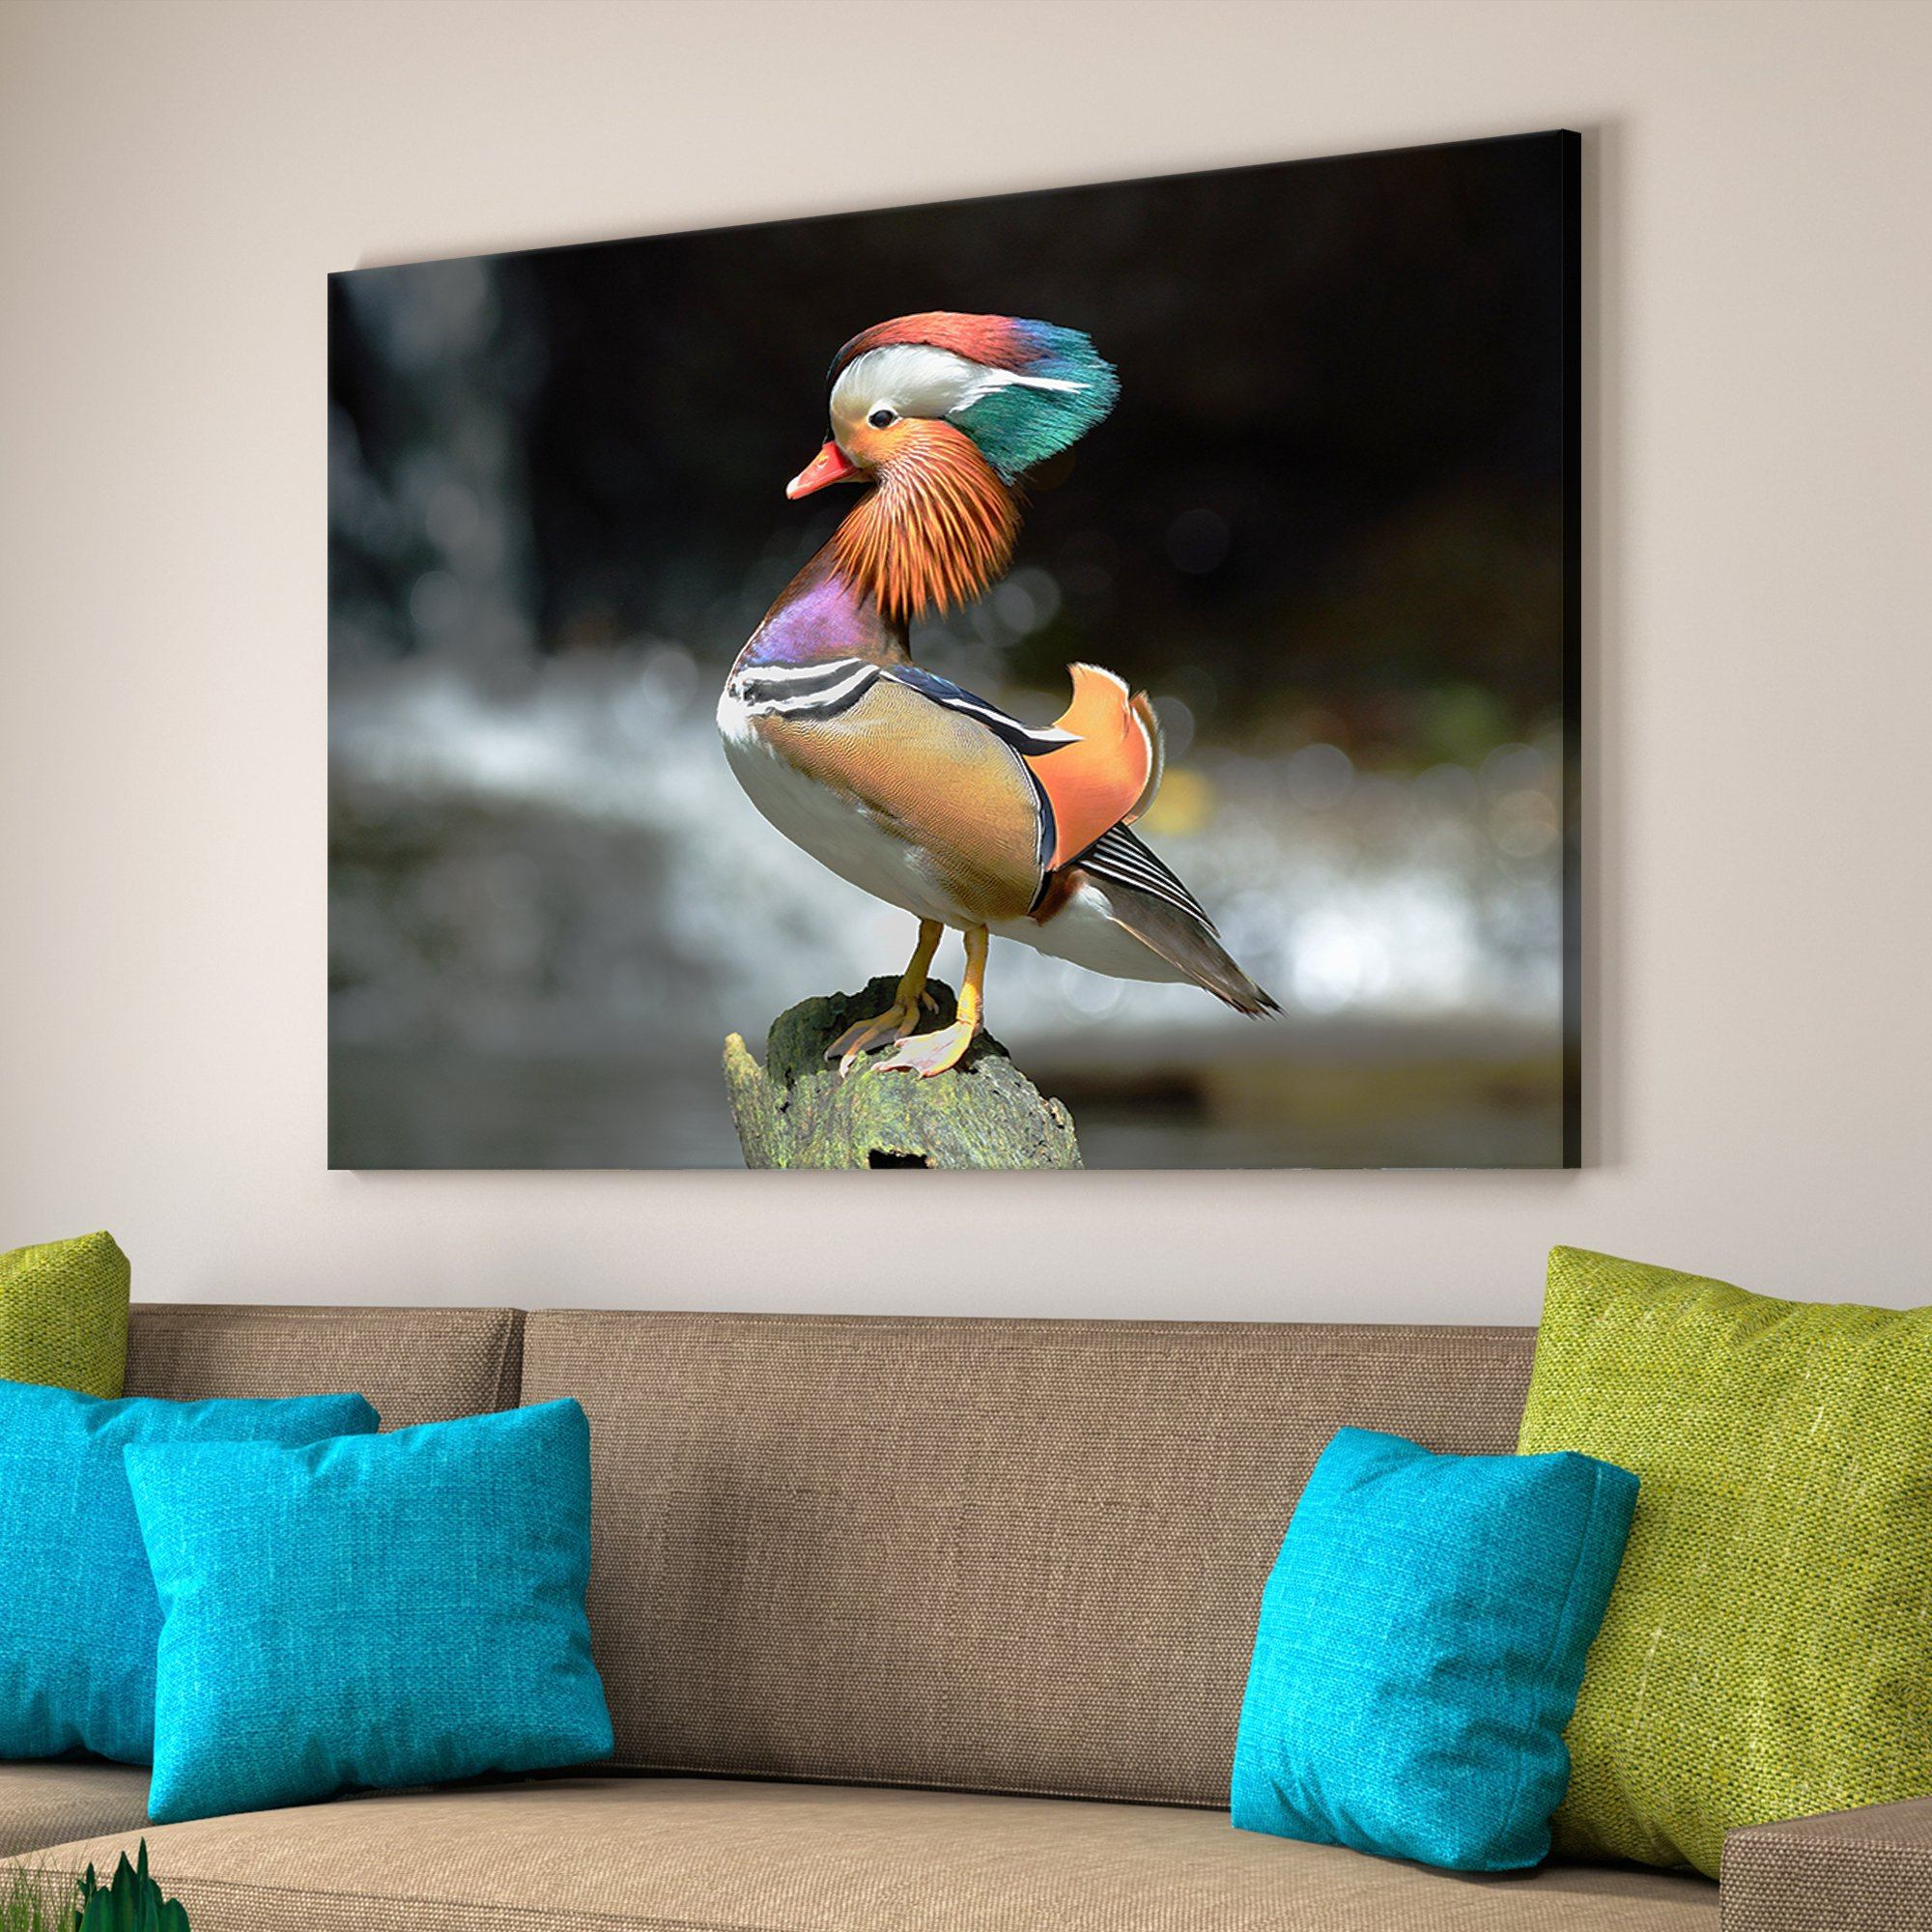 Mandarin Duck living room wall art